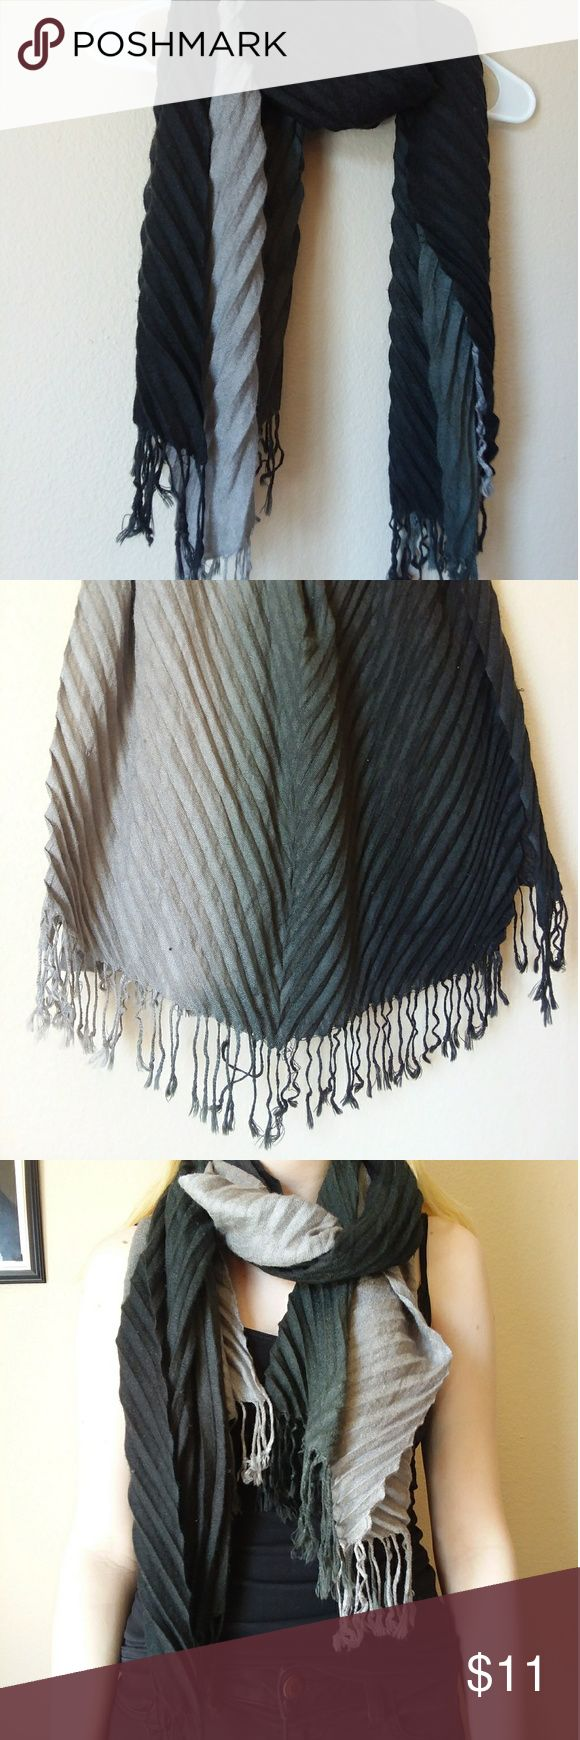 Scarf Creased hombre fabric black to light grey. Warm with tassles. Like new!! Accessories Scarves & Wraps